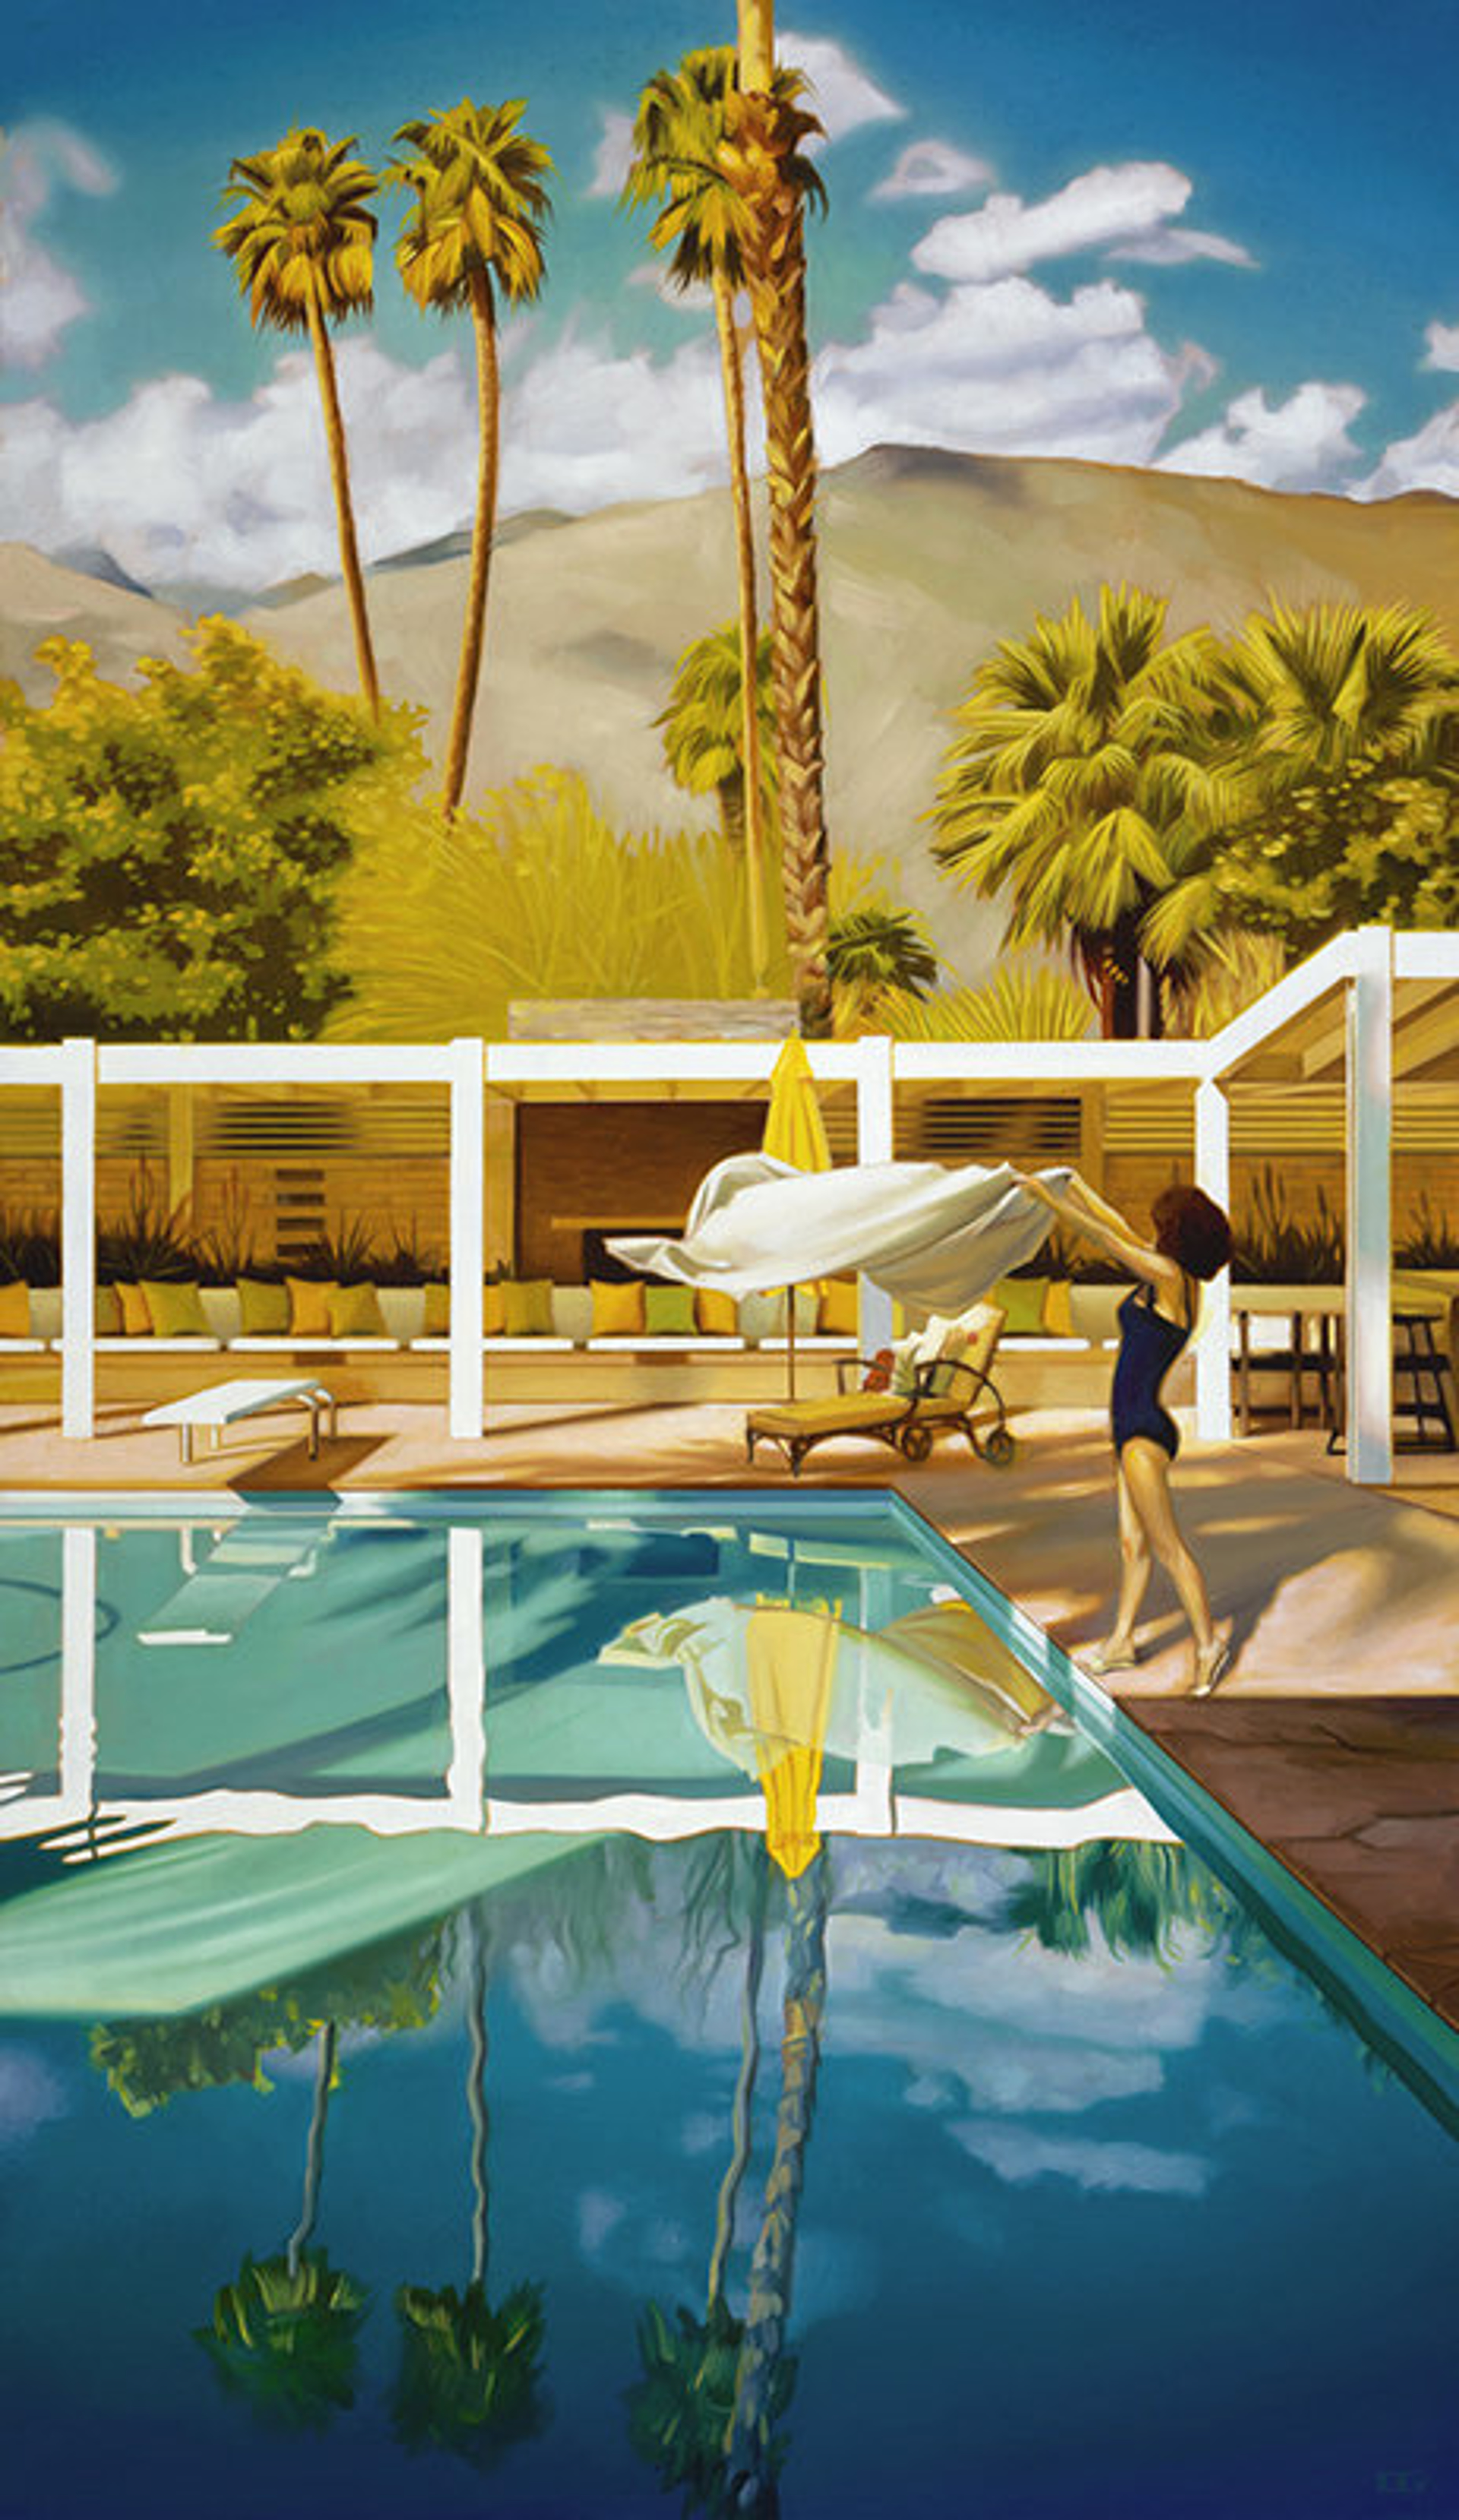 Chillin' in the Palm Shadows by Carrie Graber